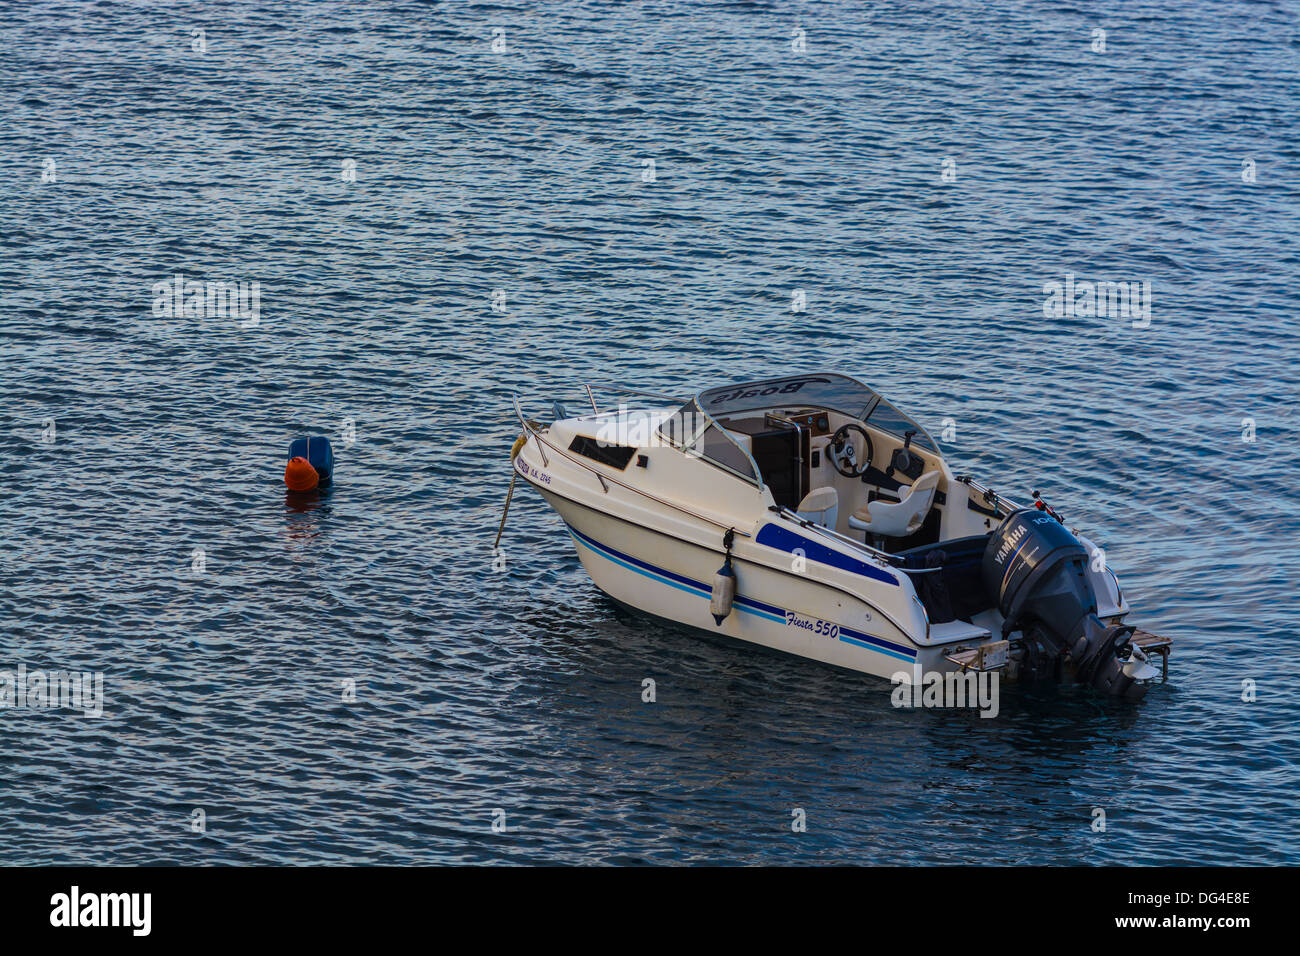 Medium size Marine outboard boat anchored in a bay - Stock Image